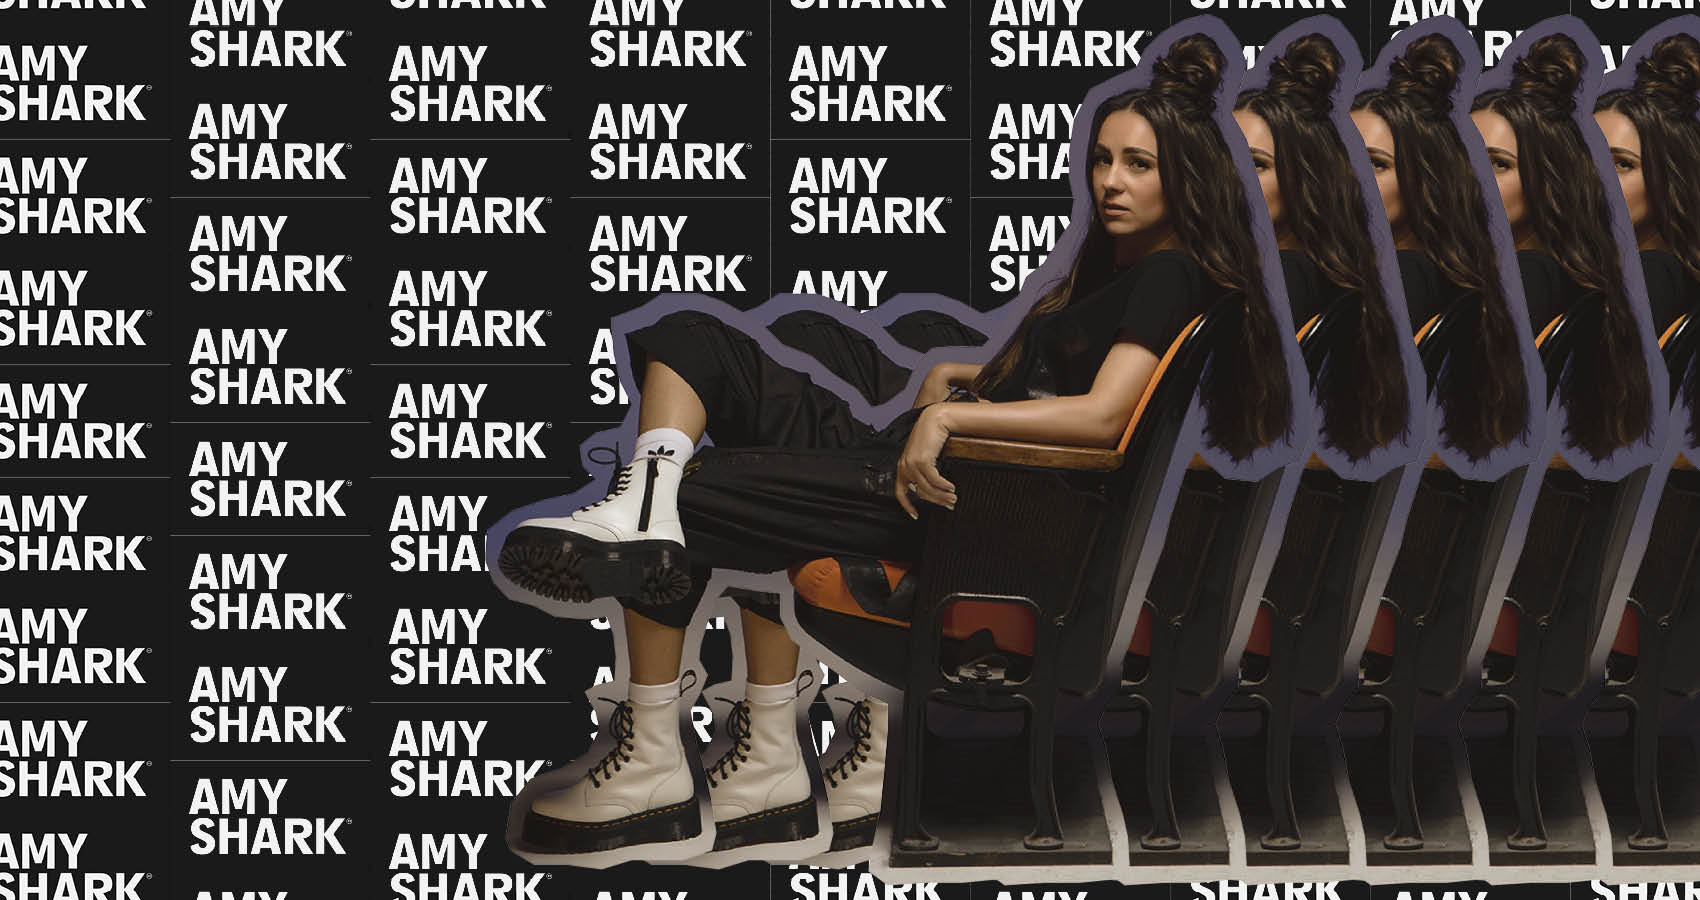 Amy Shark And Her Army Of Broken Hearts